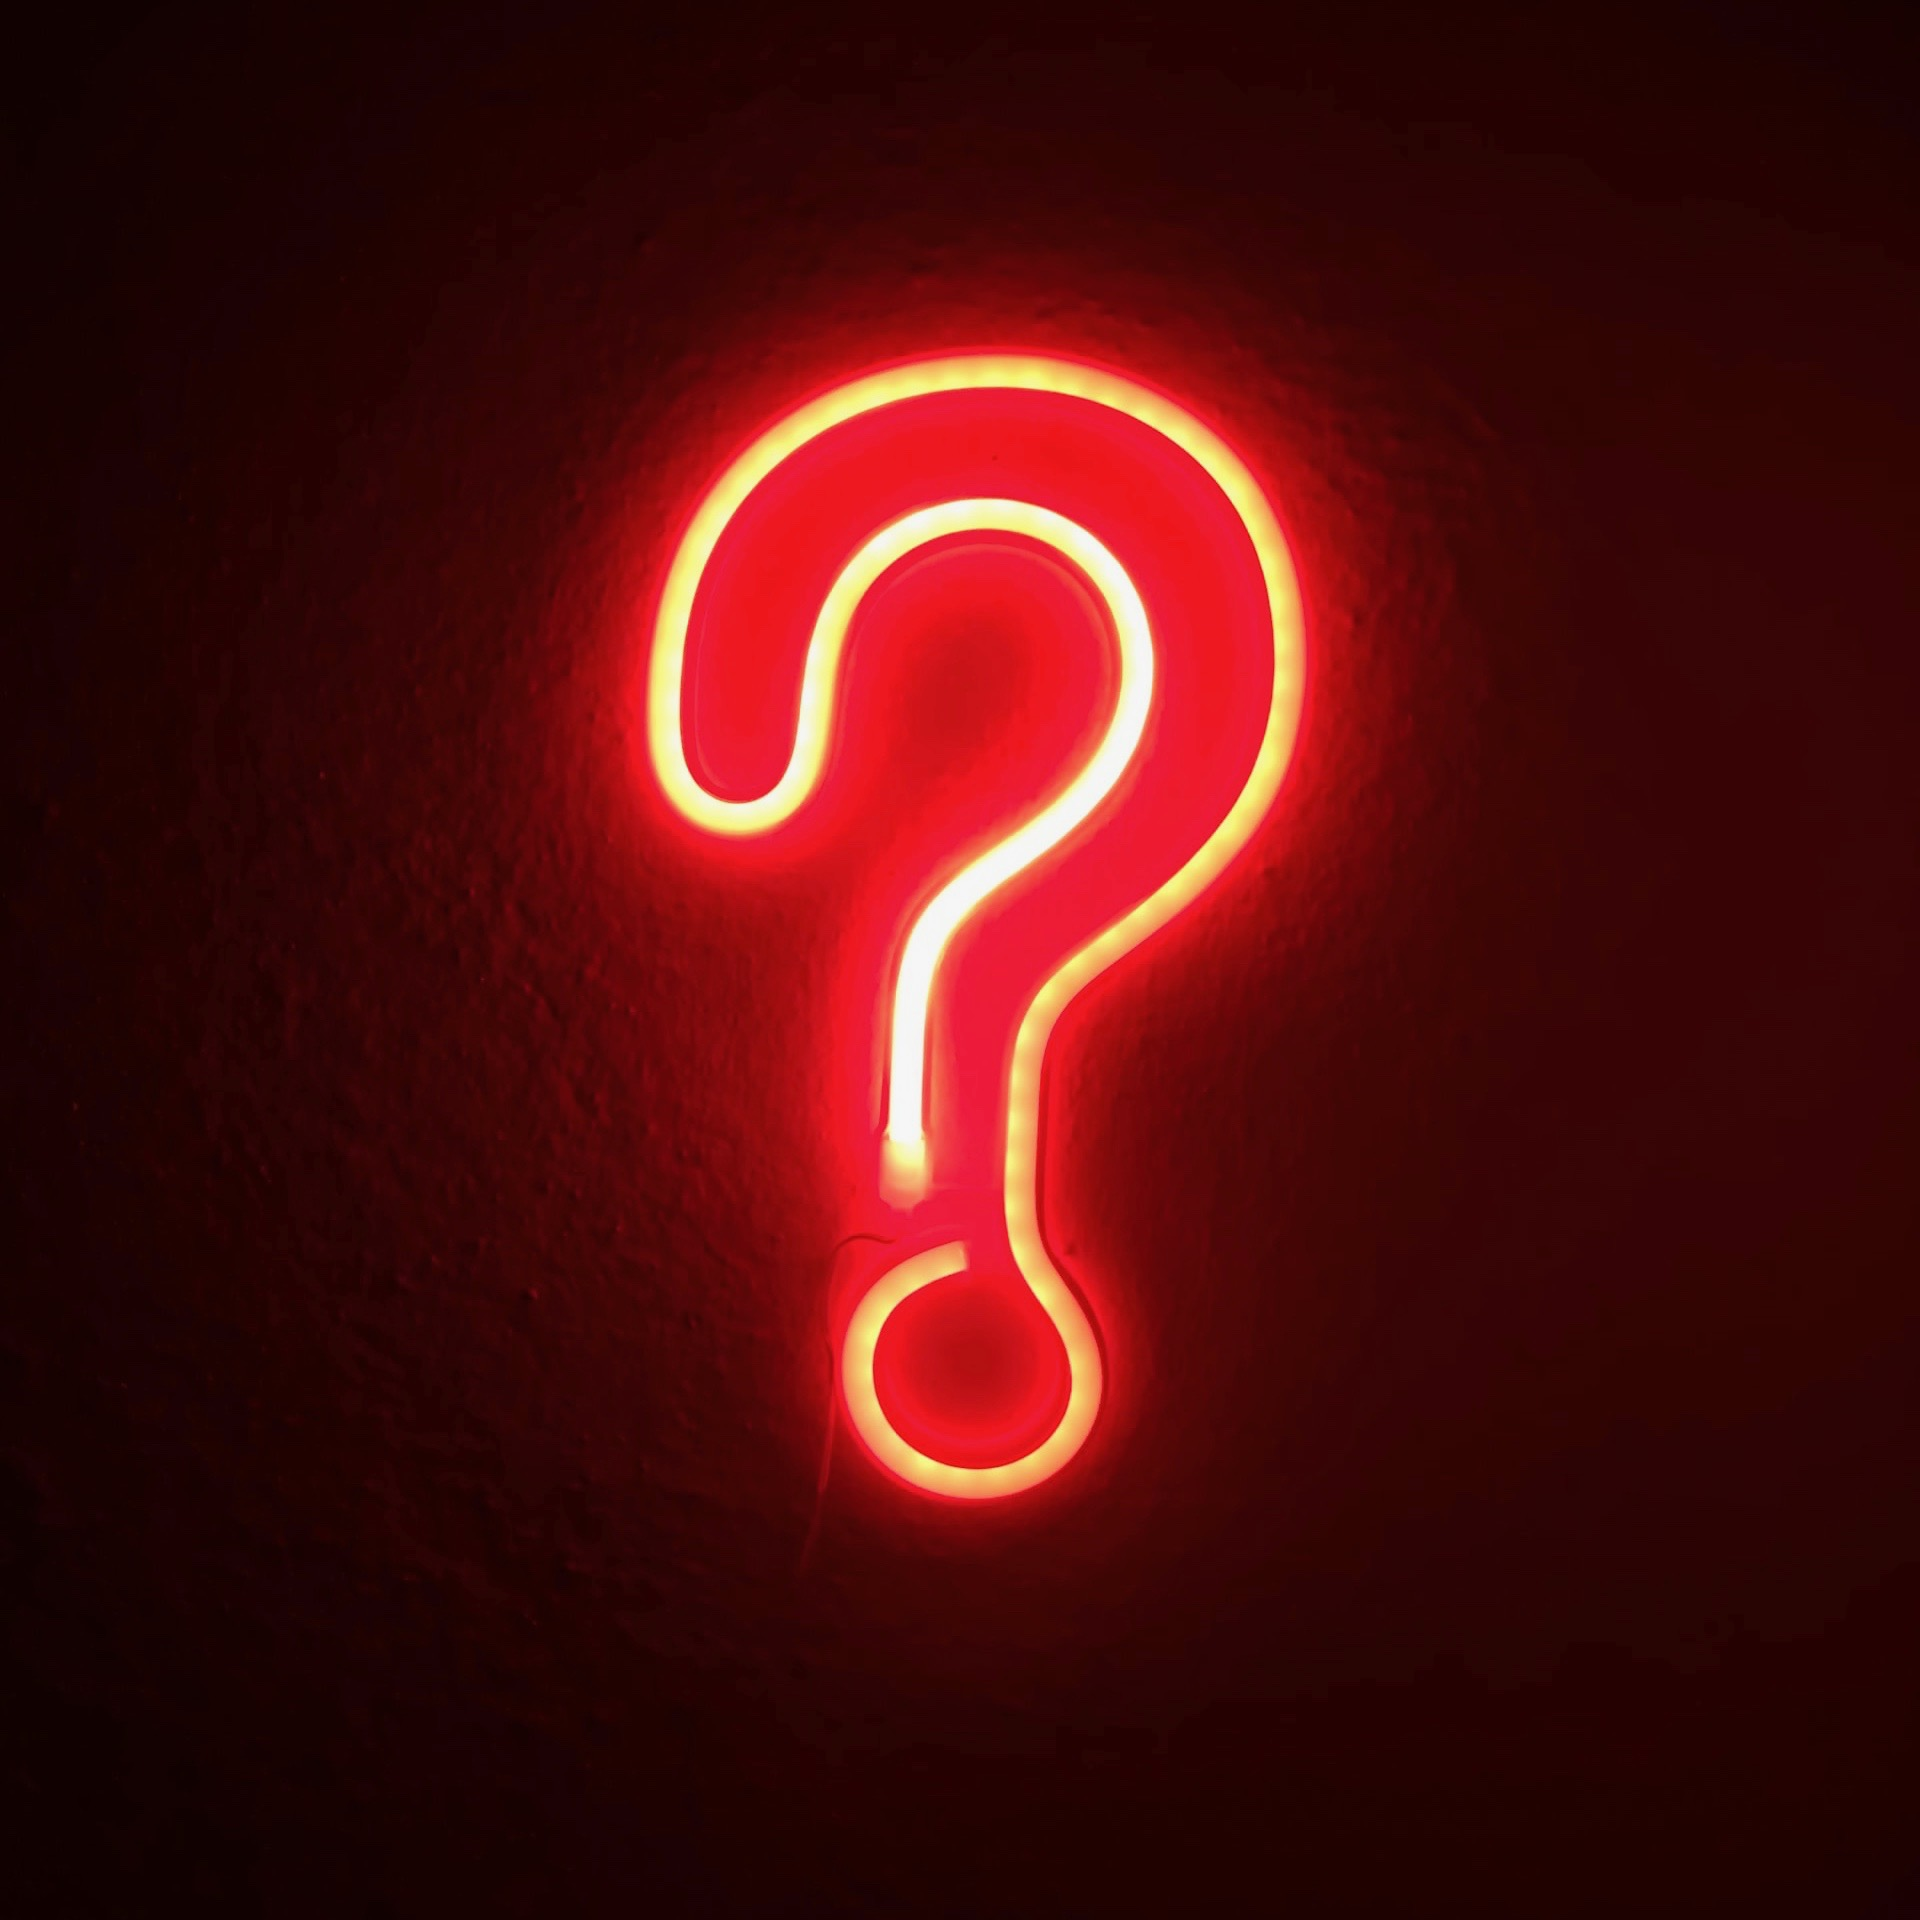 A neon red question mark. Photo courtesy of Simone Secci on Unsplash.